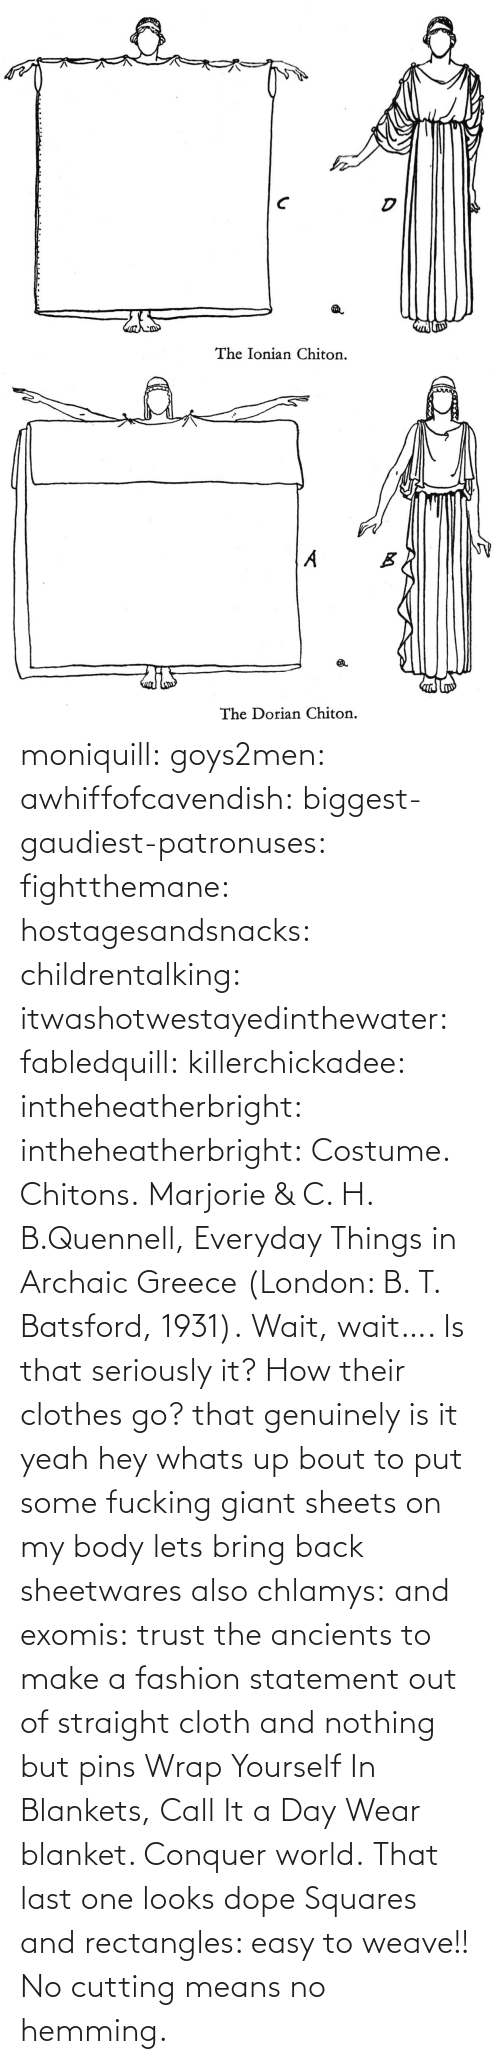 The New: moniquill: goys2men:  awhiffofcavendish:  biggest-gaudiest-patronuses:  fightthemane:  hostagesandsnacks:  childrentalking:  itwashotwestayedinthewater:  fabledquill:  killerchickadee:  intheheatherbright:  intheheatherbright:  Costume. Chitons.  Marjorie & C. H. B.Quennell, Everyday Things in Archaic Greece (London: B. T. Batsford, 1931).  Wait, wait…. Is that seriously it? How their clothes go?  that genuinely is it  yeah hey whats up bout to put some fucking giant sheets on my body  lets bring back sheetwares  also chlamys: and exomis:  trust the ancients to make a fashion statement out of straight cloth and nothing but pins  Wrap Yourself In Blankets, Call It a Day  Wear blanket. Conquer world.   That last one looks dope    Squares and rectangles: easy to weave!! No cutting means no hemming.